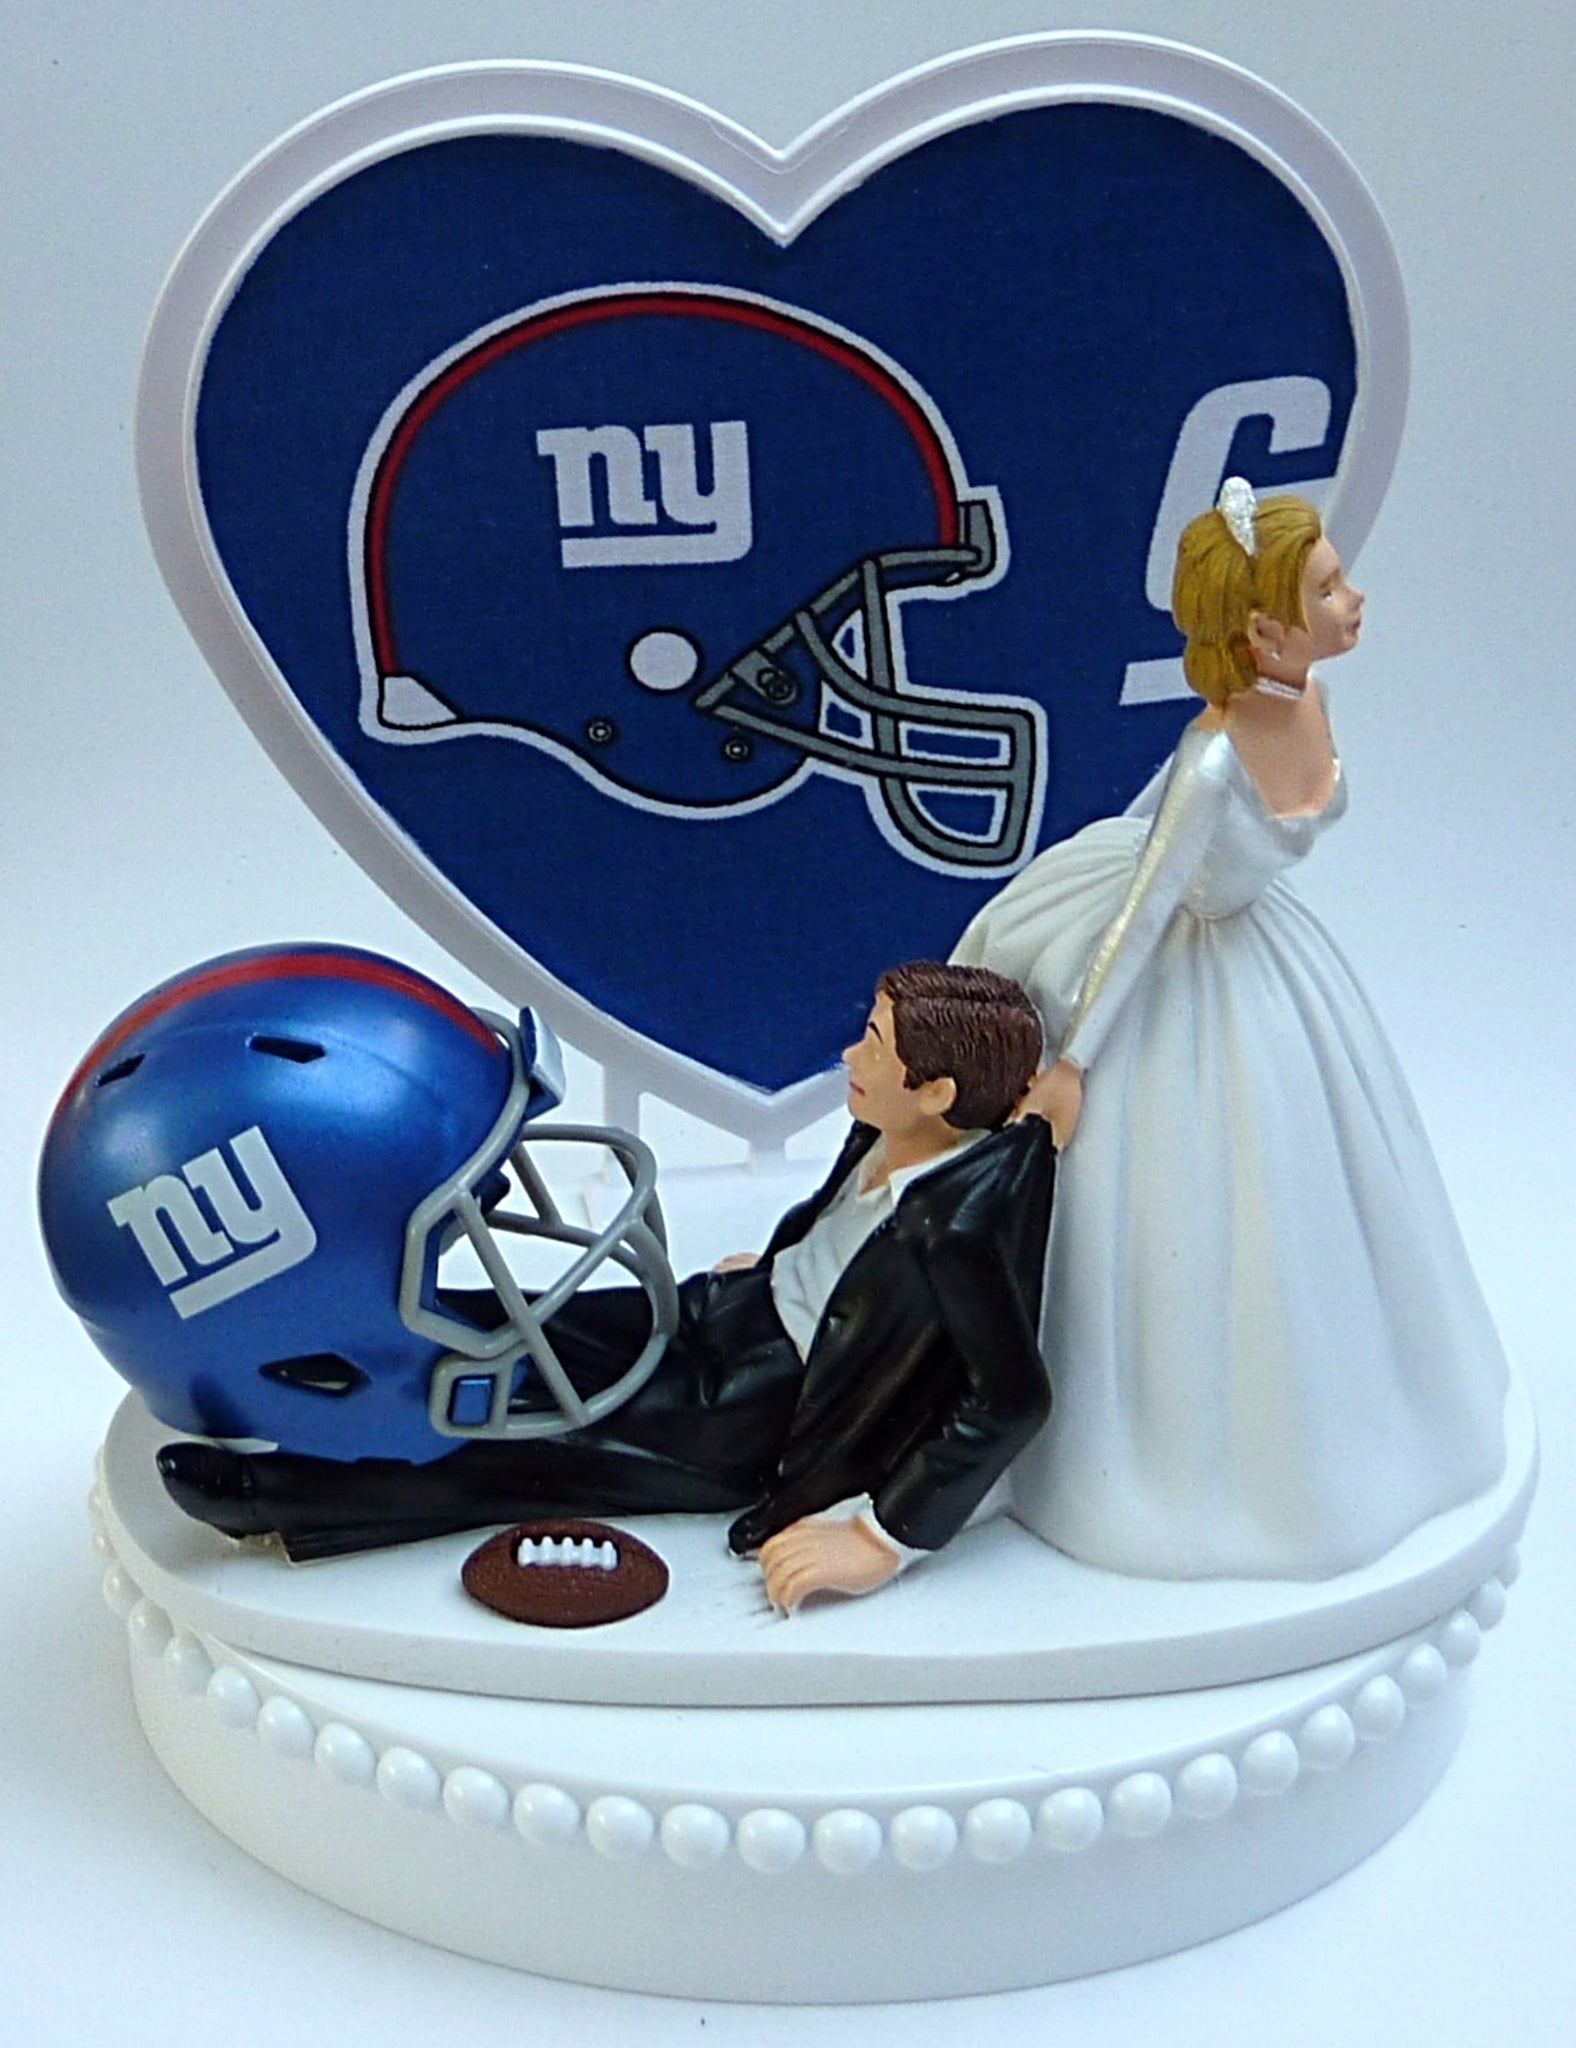 New York Giants wedding cake topper NY football NFL fans bride dragging groom humorous funny